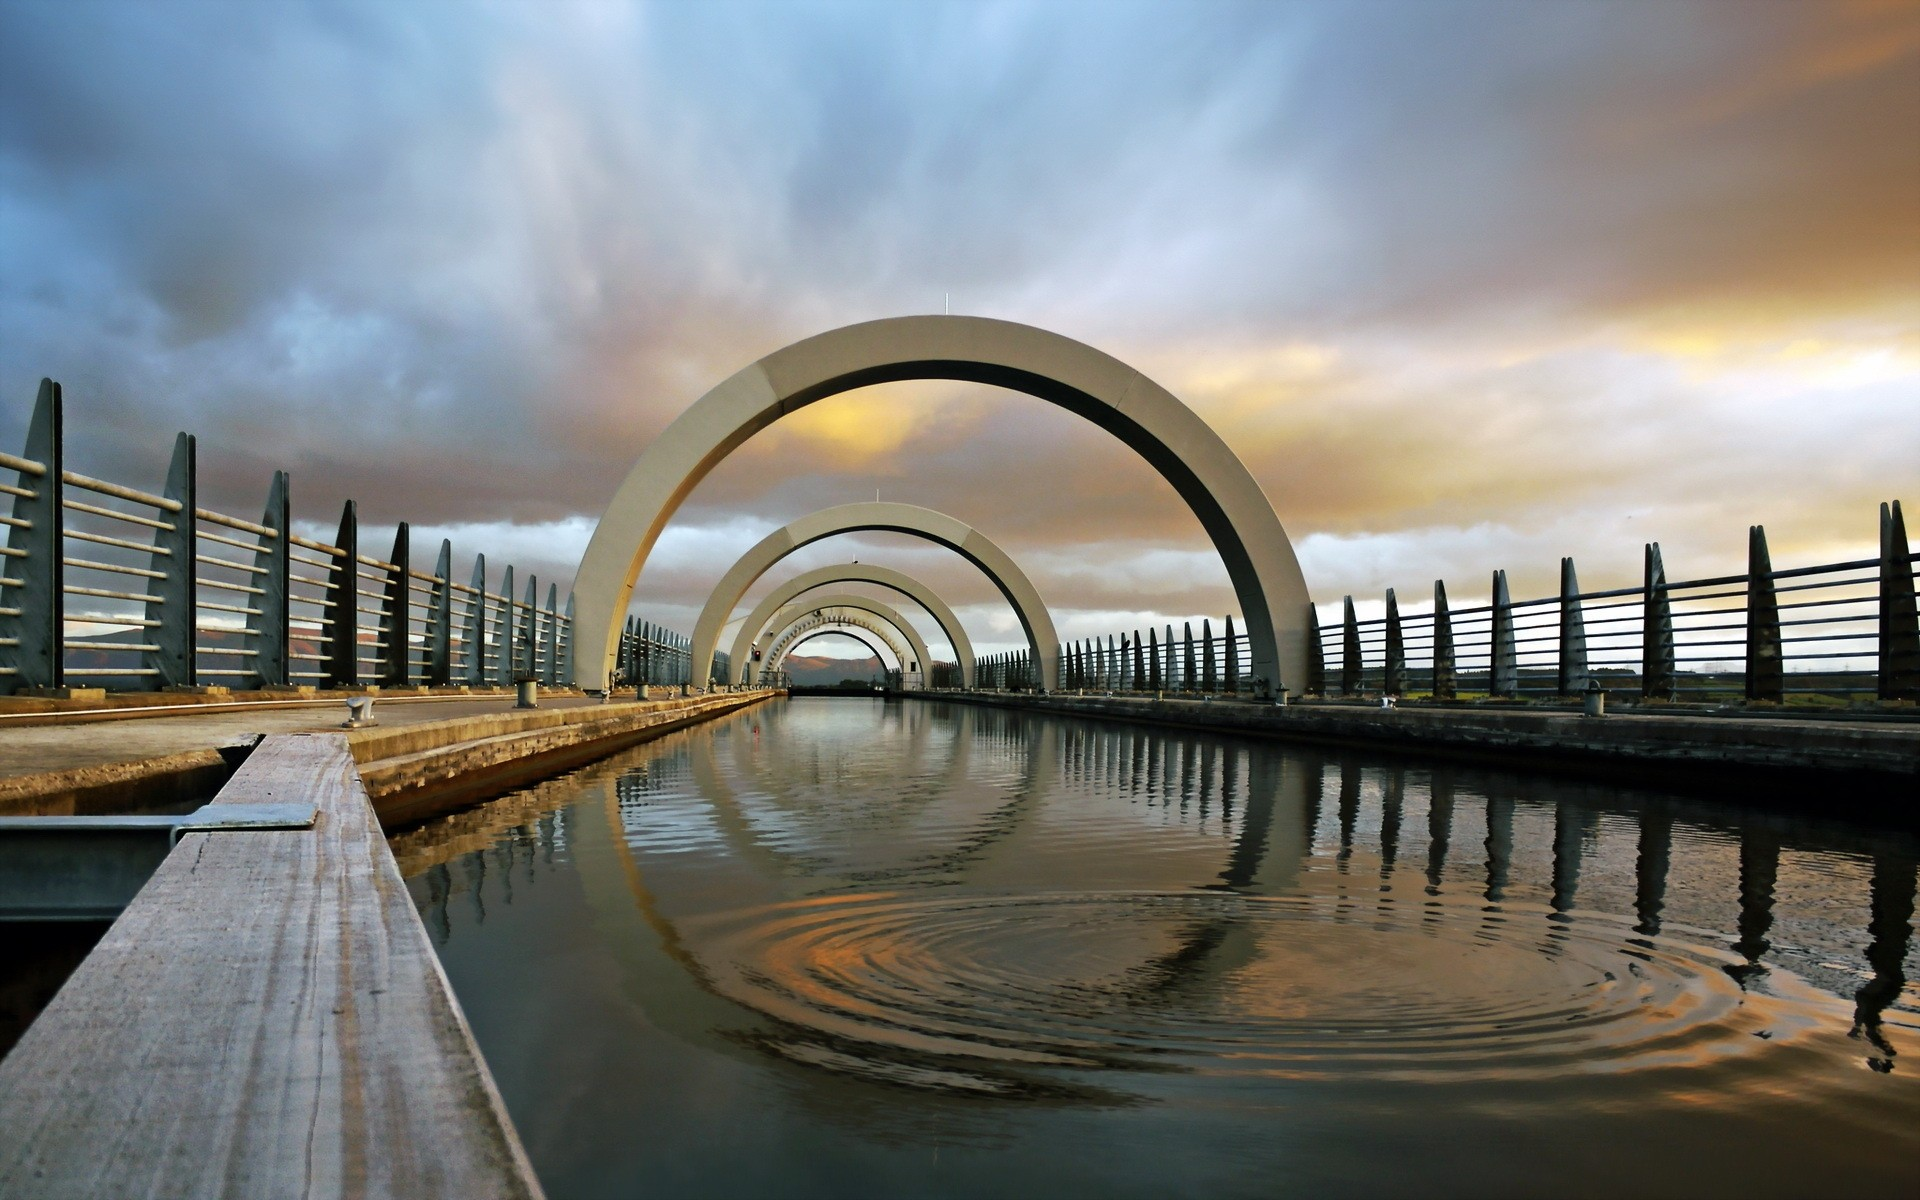 united kingdom water bridge sunset sky river reflection sea dawn pier travel sun nature beach ocean lake city light jetty landscape wheel background